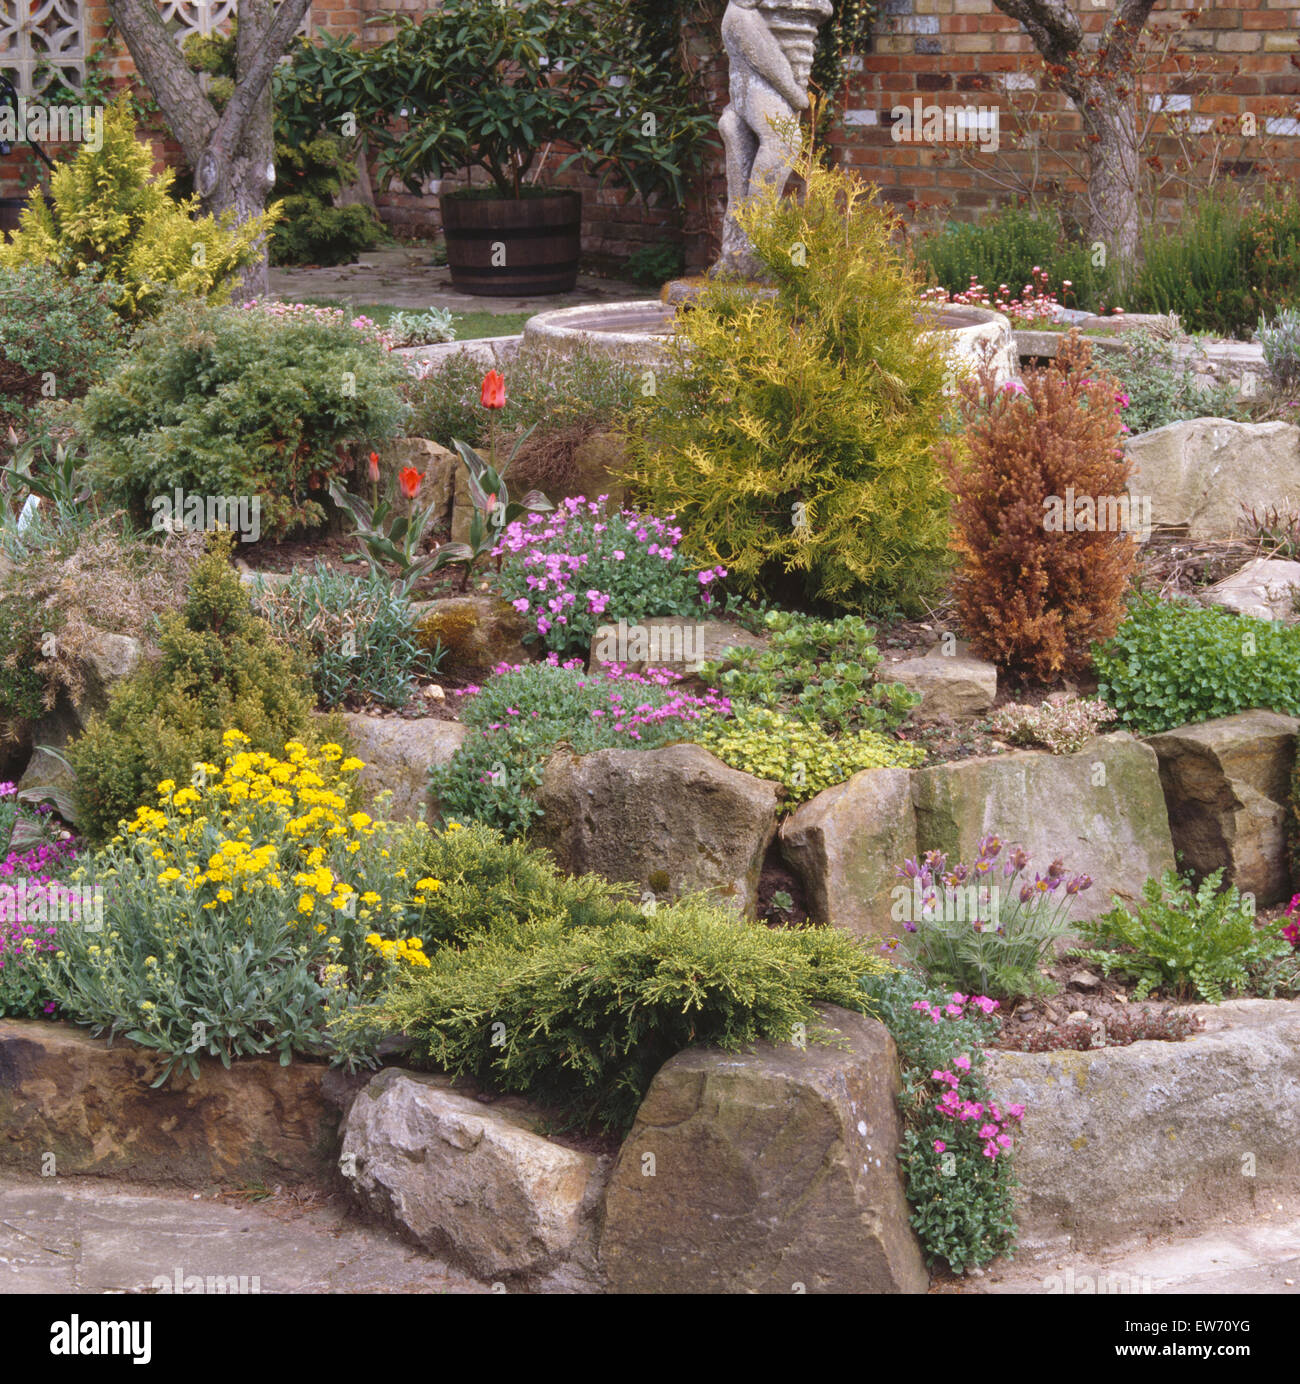 Low conifers and colorful alpines in seventies rockery garden - Stock Image